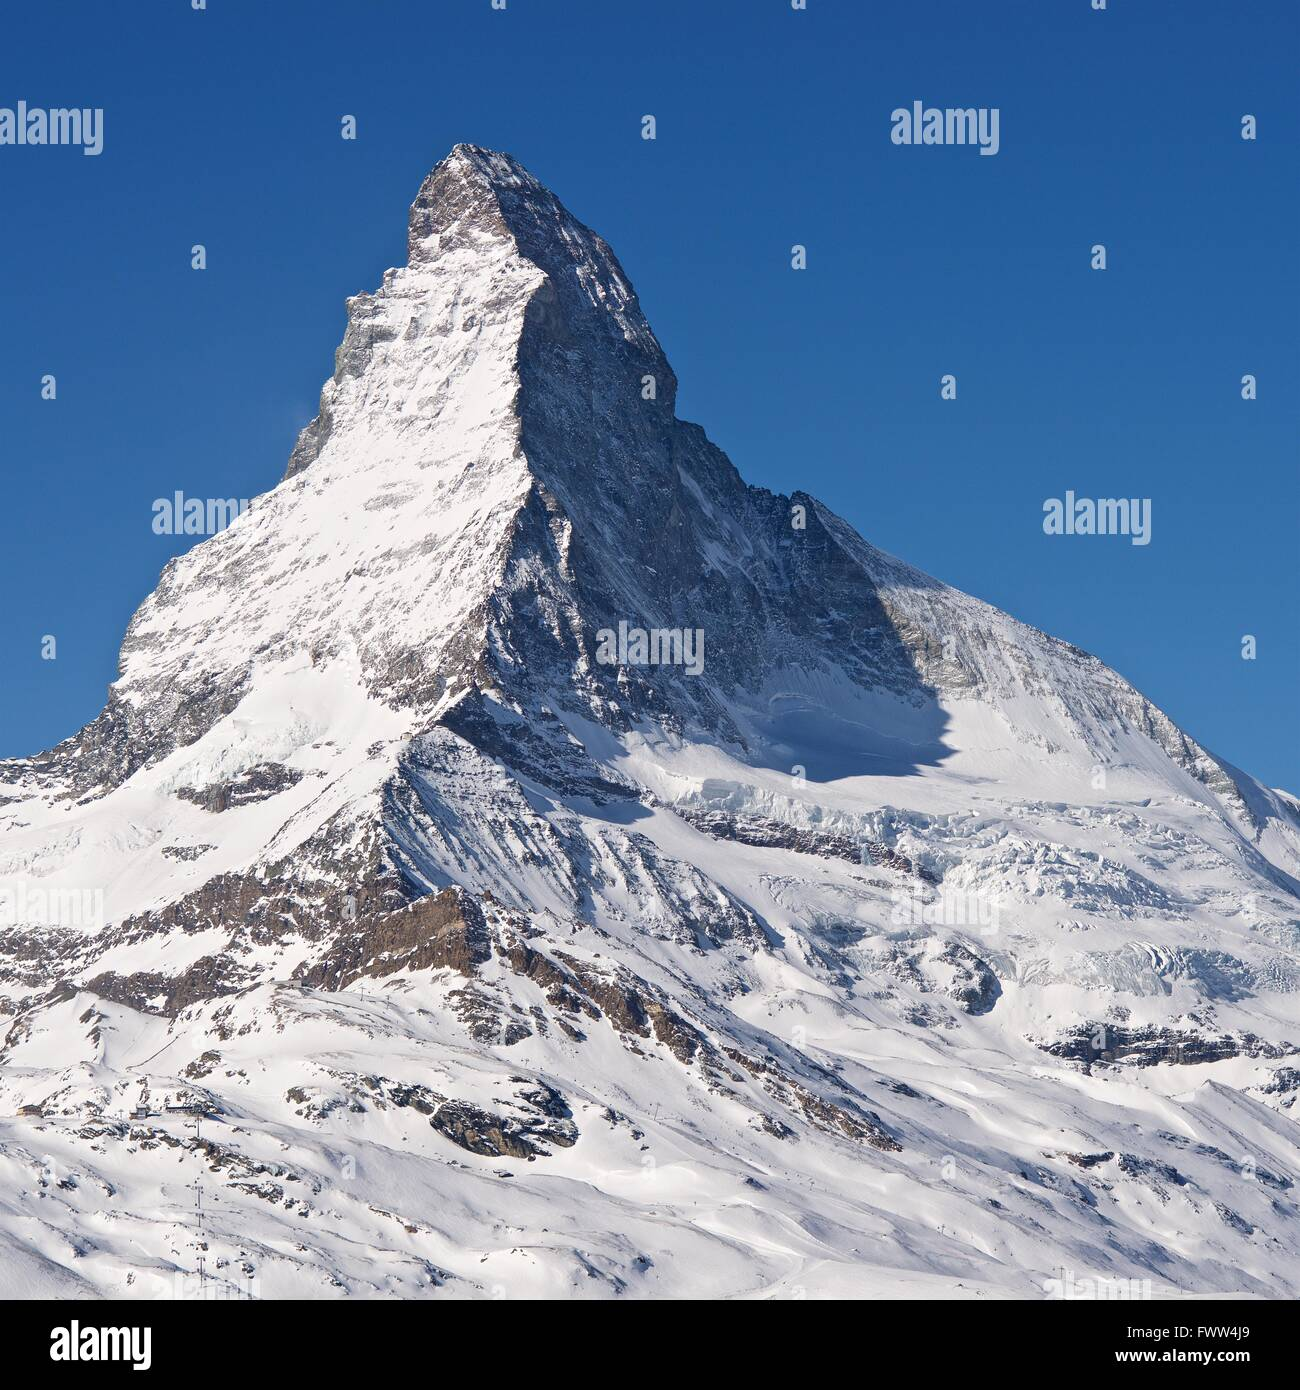 A colour image of the peak of the snow covered matterhorn - Stock Image